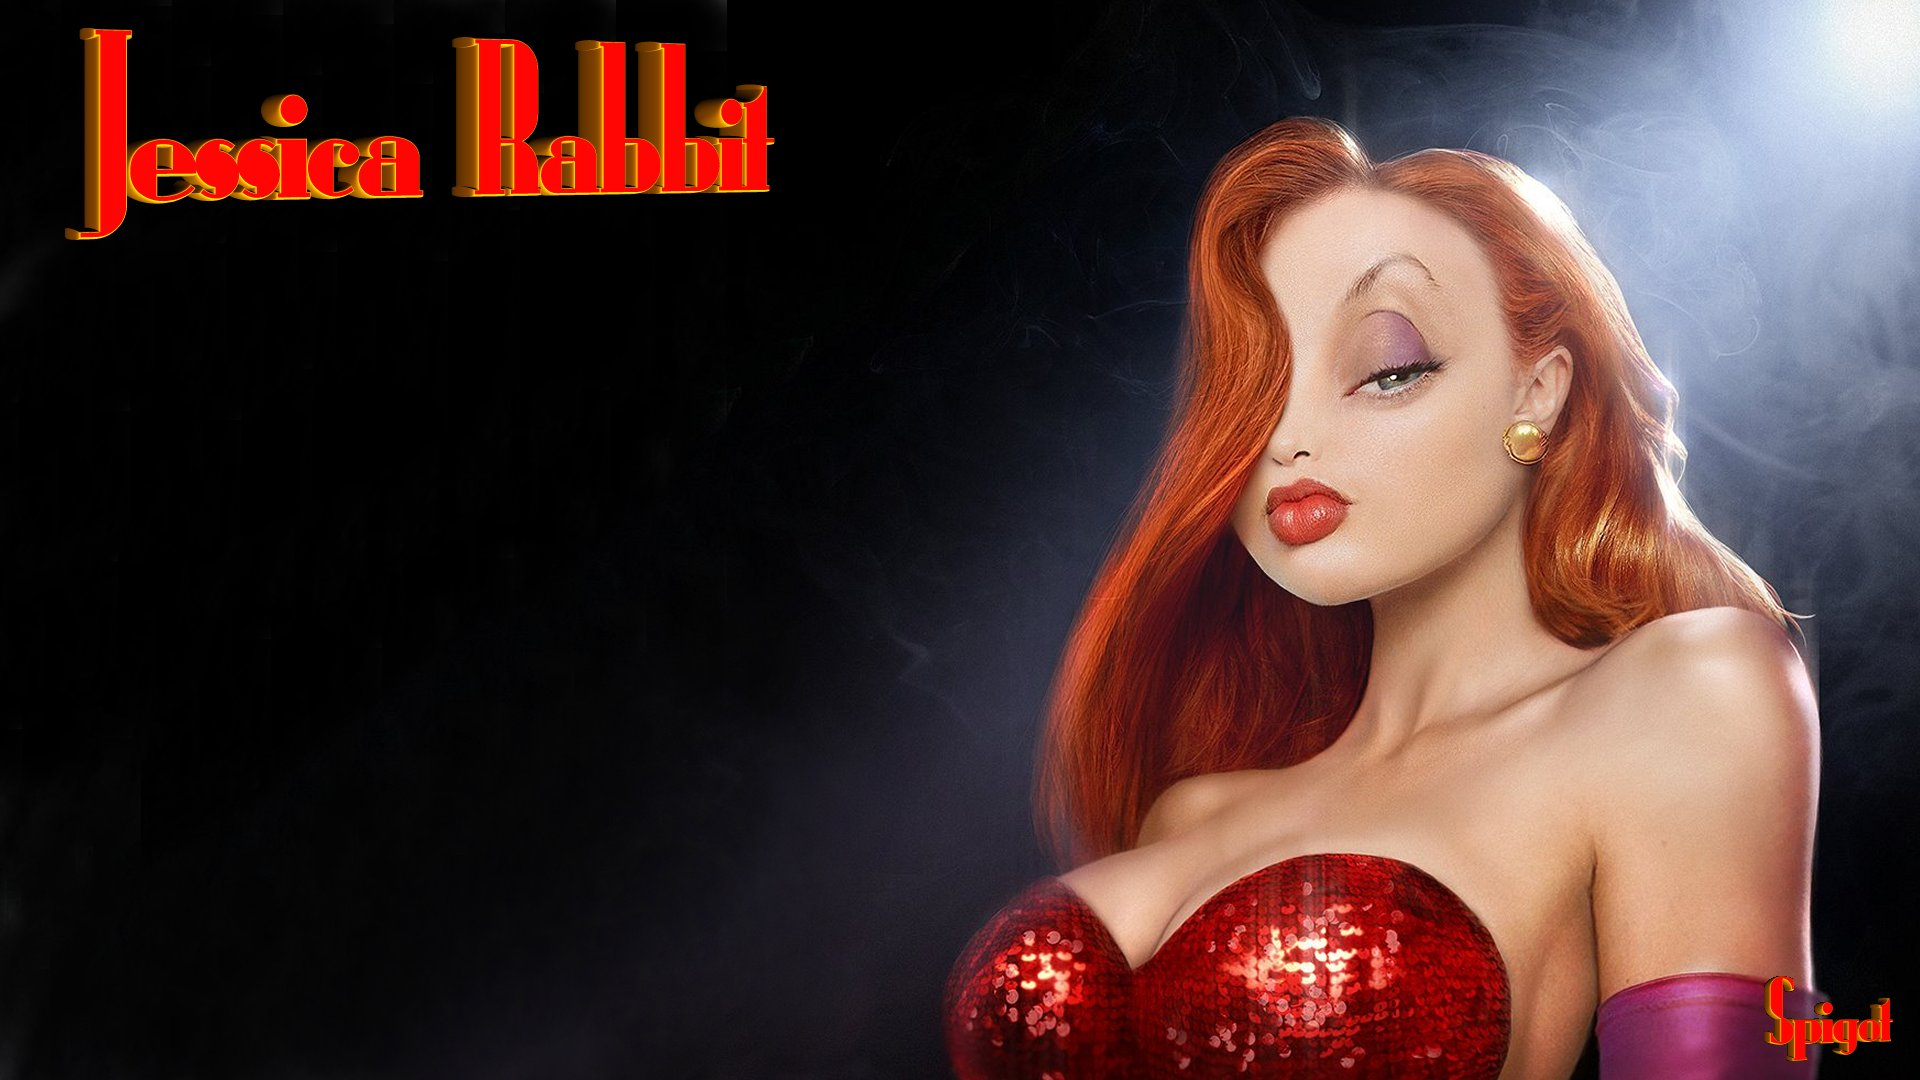 Jessica Rabbit 3D http://georgespigot.wordpress.com/2011/02/